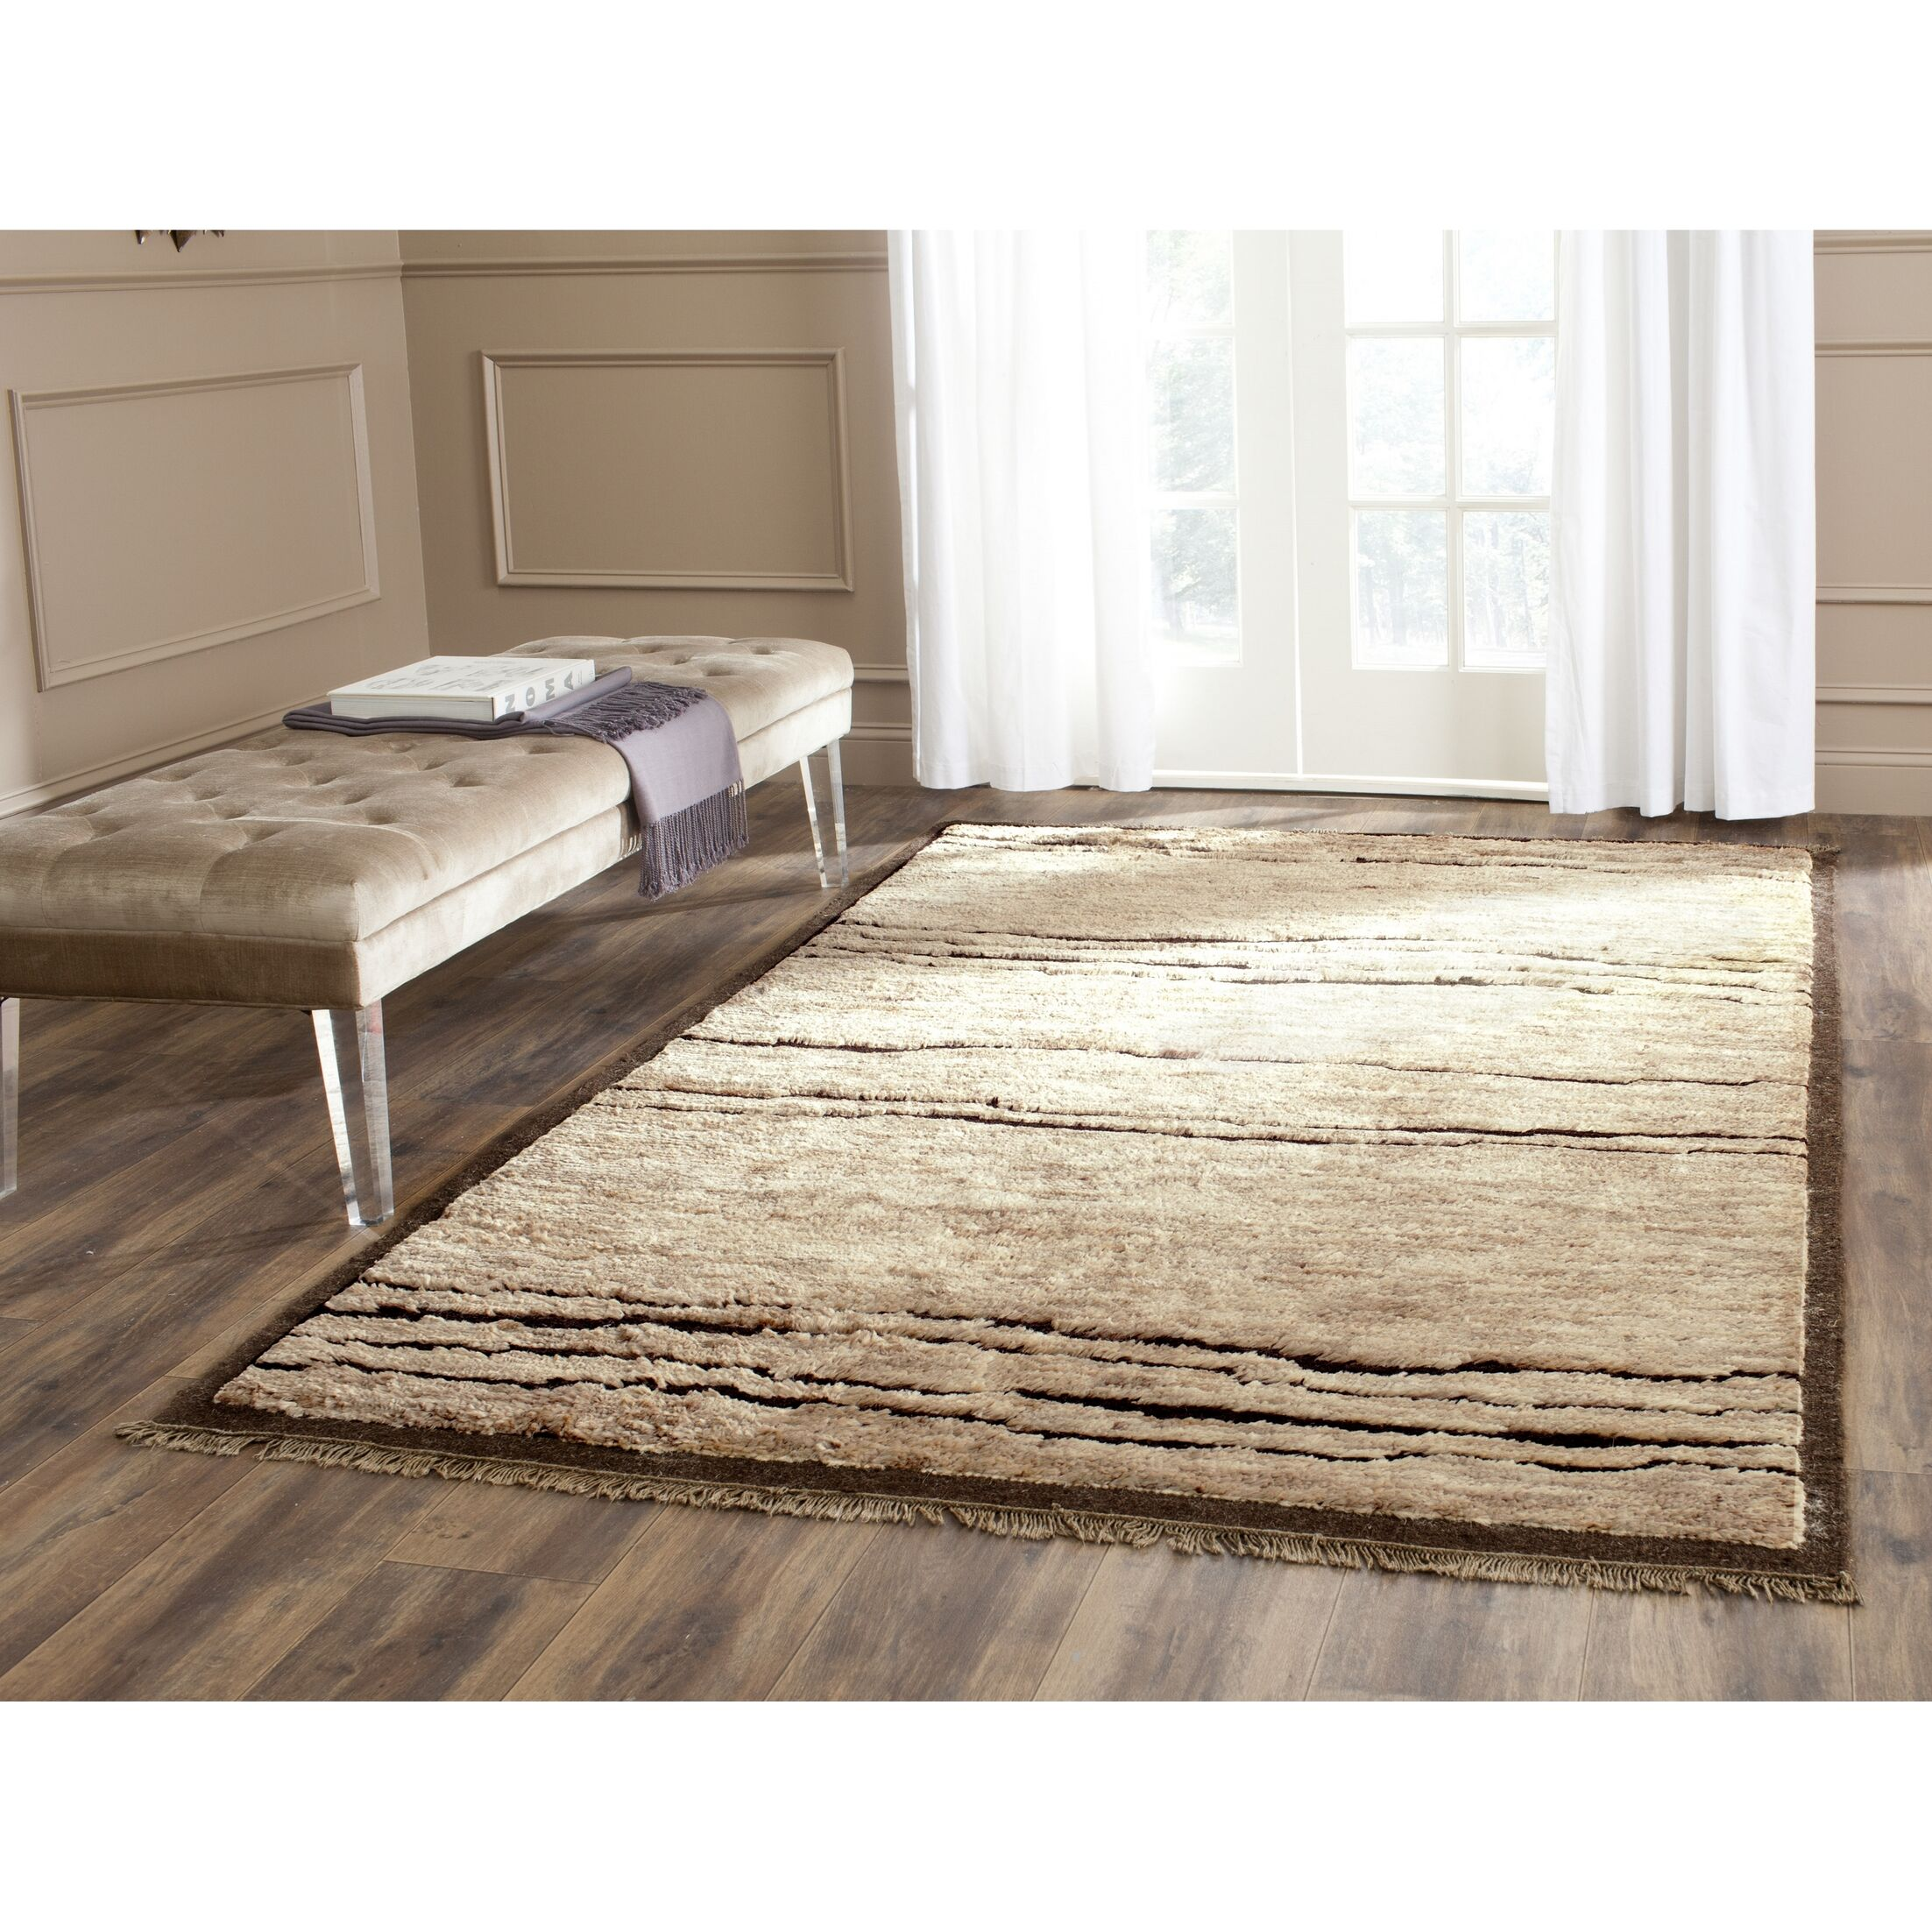 Cosper Hand-Tufted Brown/Tan Area Rug Rug Size: Rectangle 4' x 6'